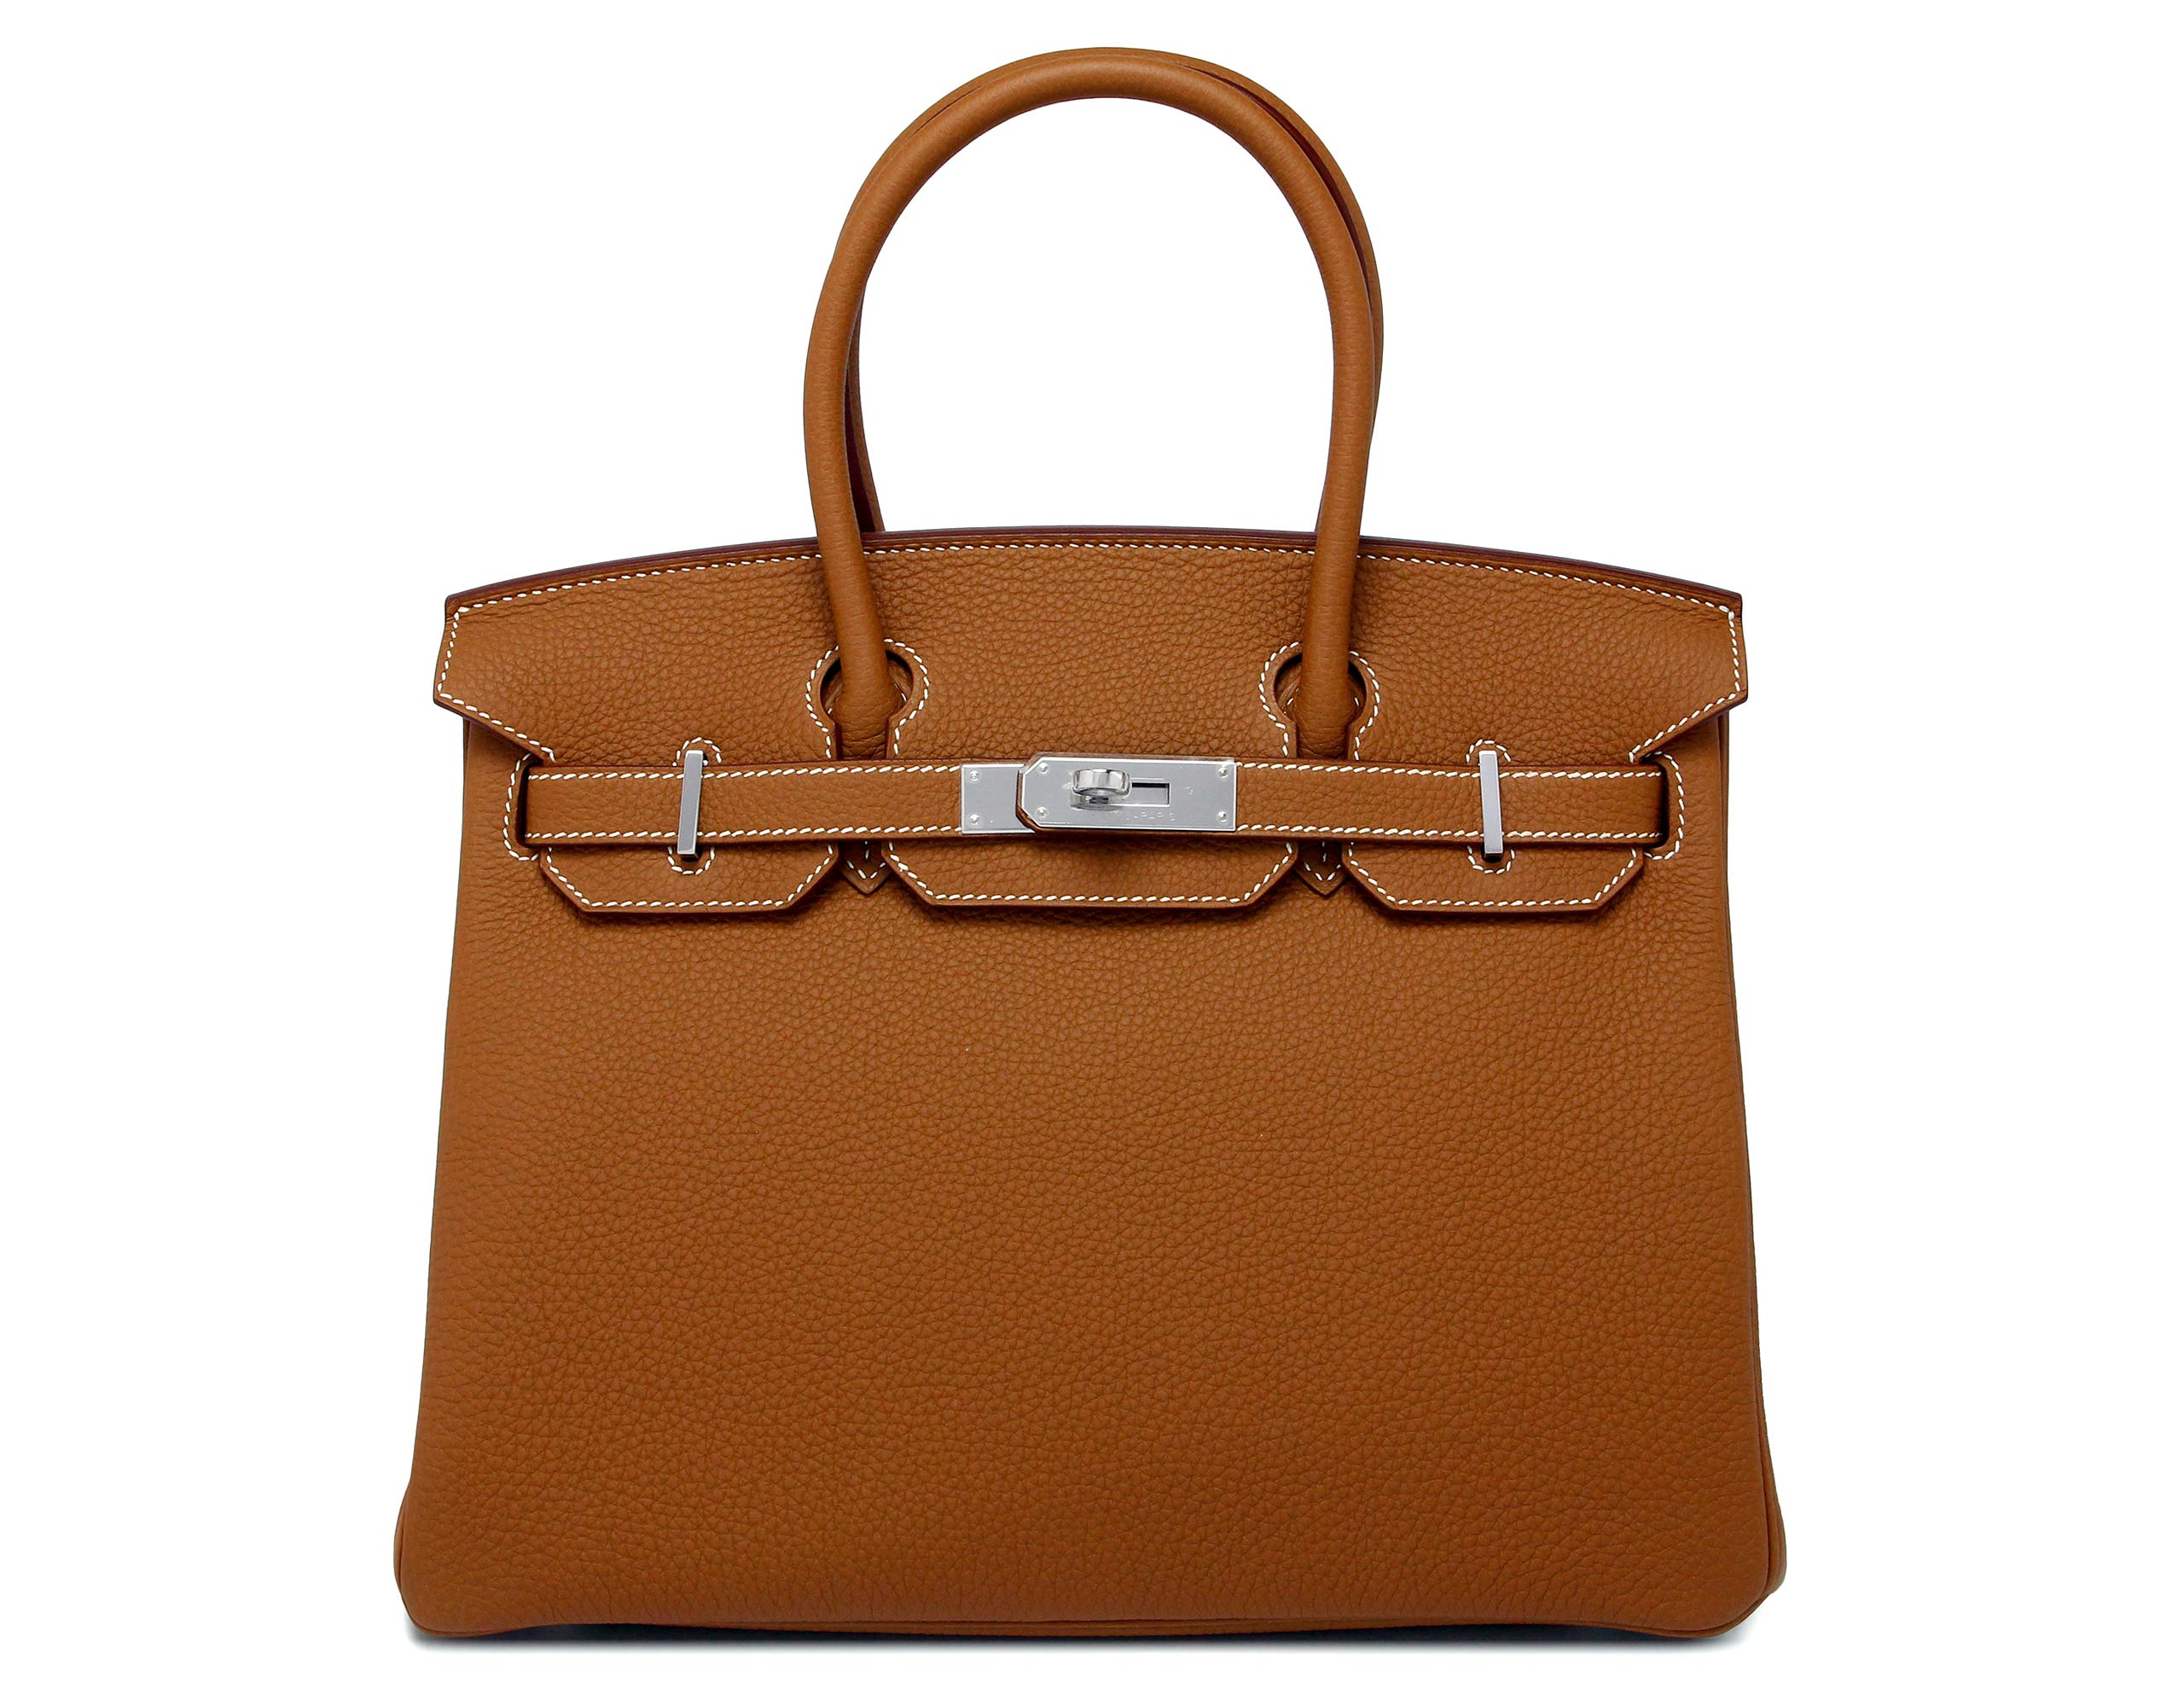 5fcfe5506c6d Hermes Birkin Bags For Sale